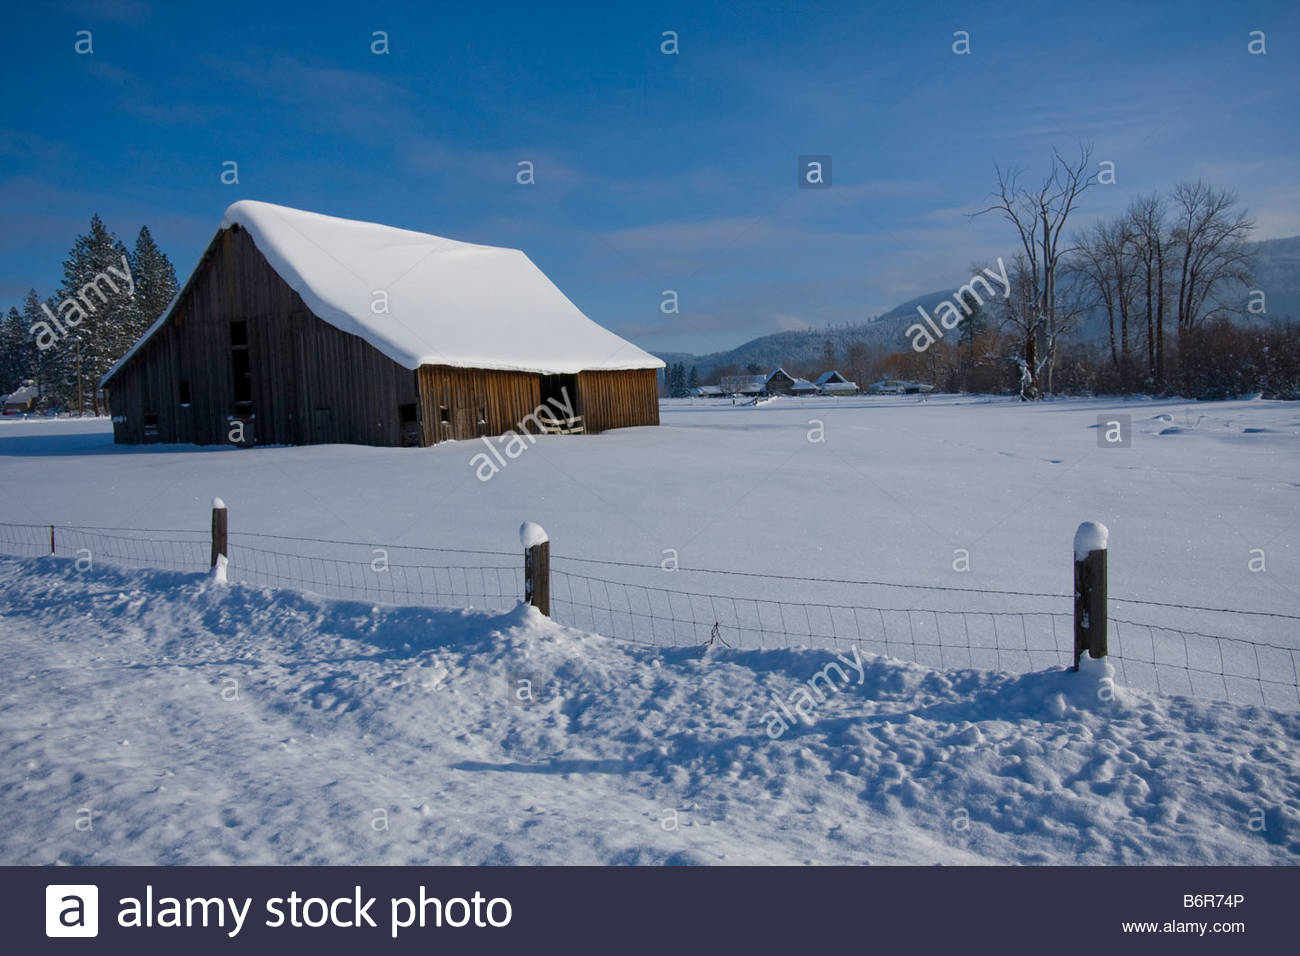 A winter landscape with barn and fence in snowy meadow Stock Photo